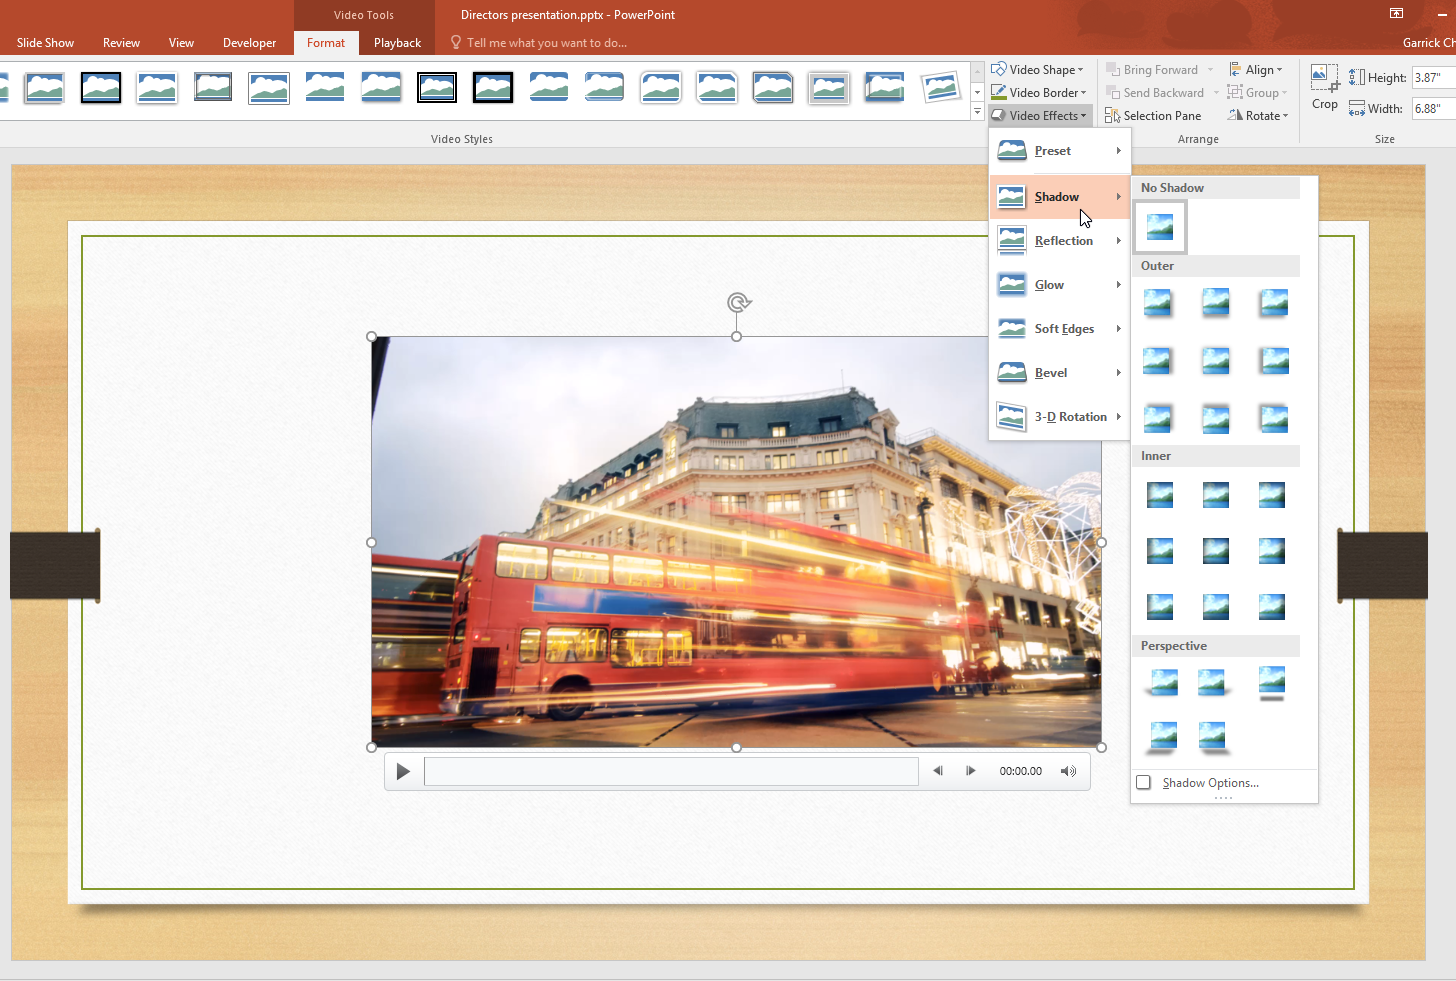 5 Tips for Working with Video in PowerPoint